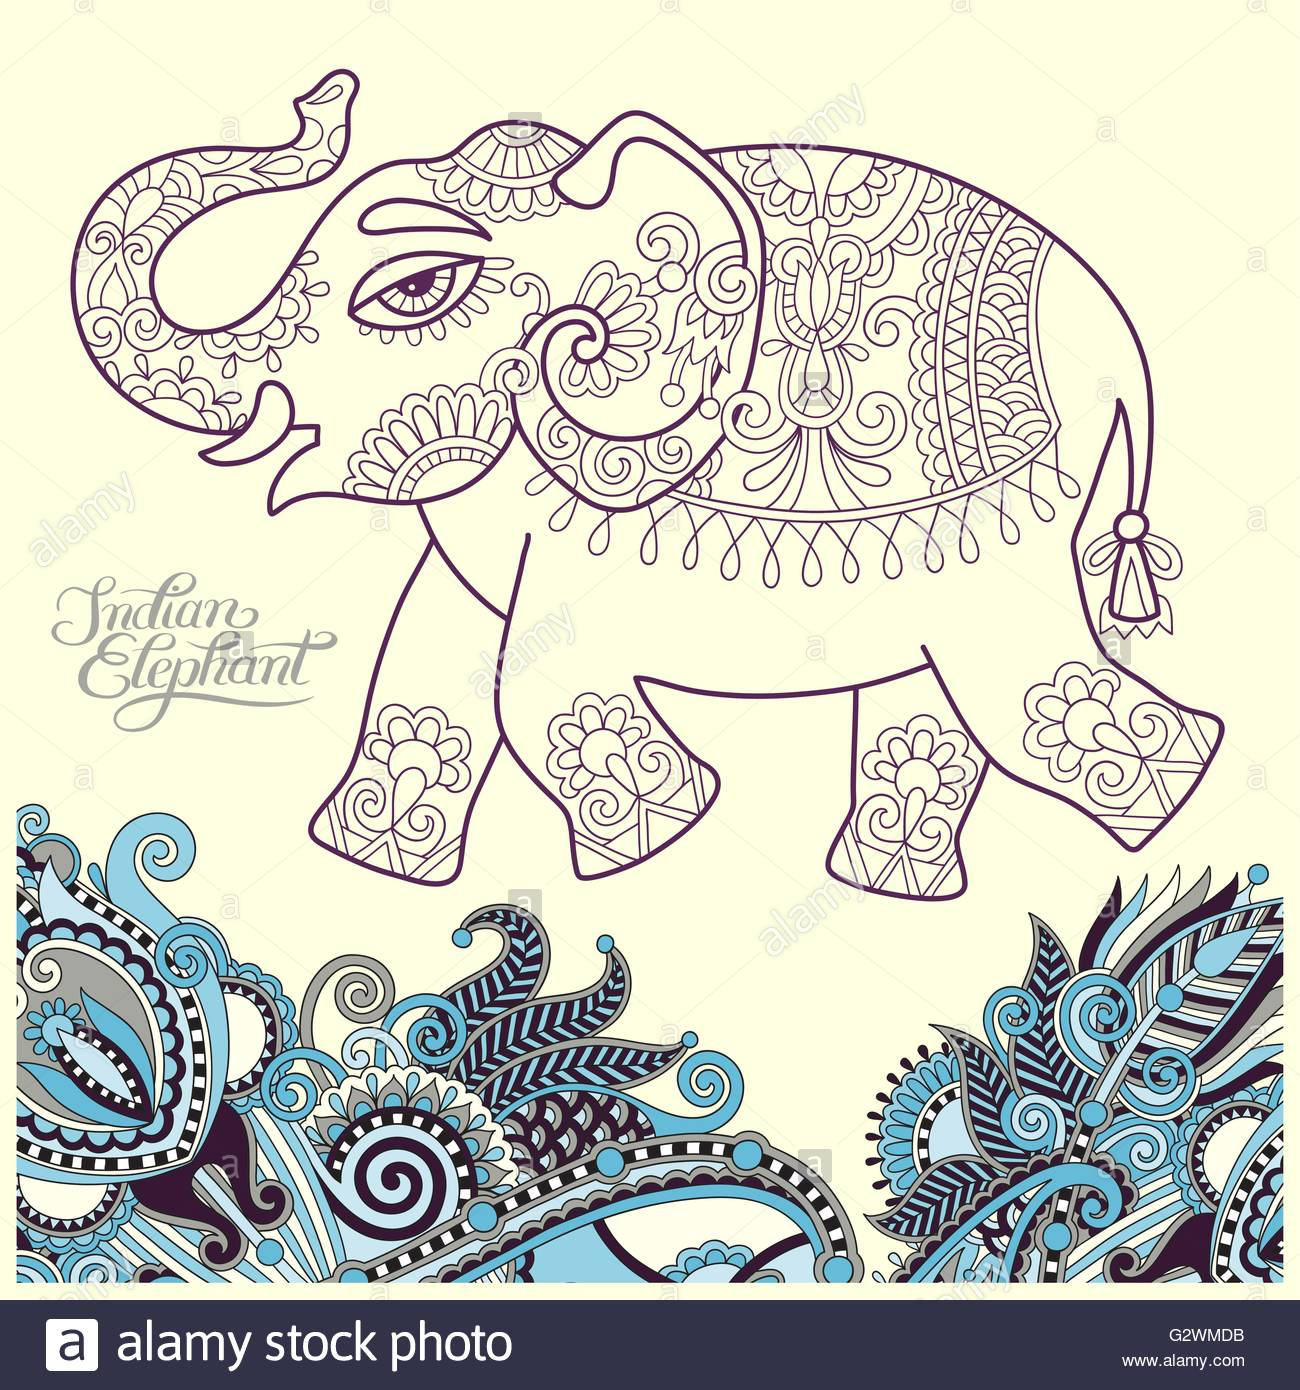 1300x1390 Original Stylized Ethnic Indian Elephant Pattern Drawing And Han